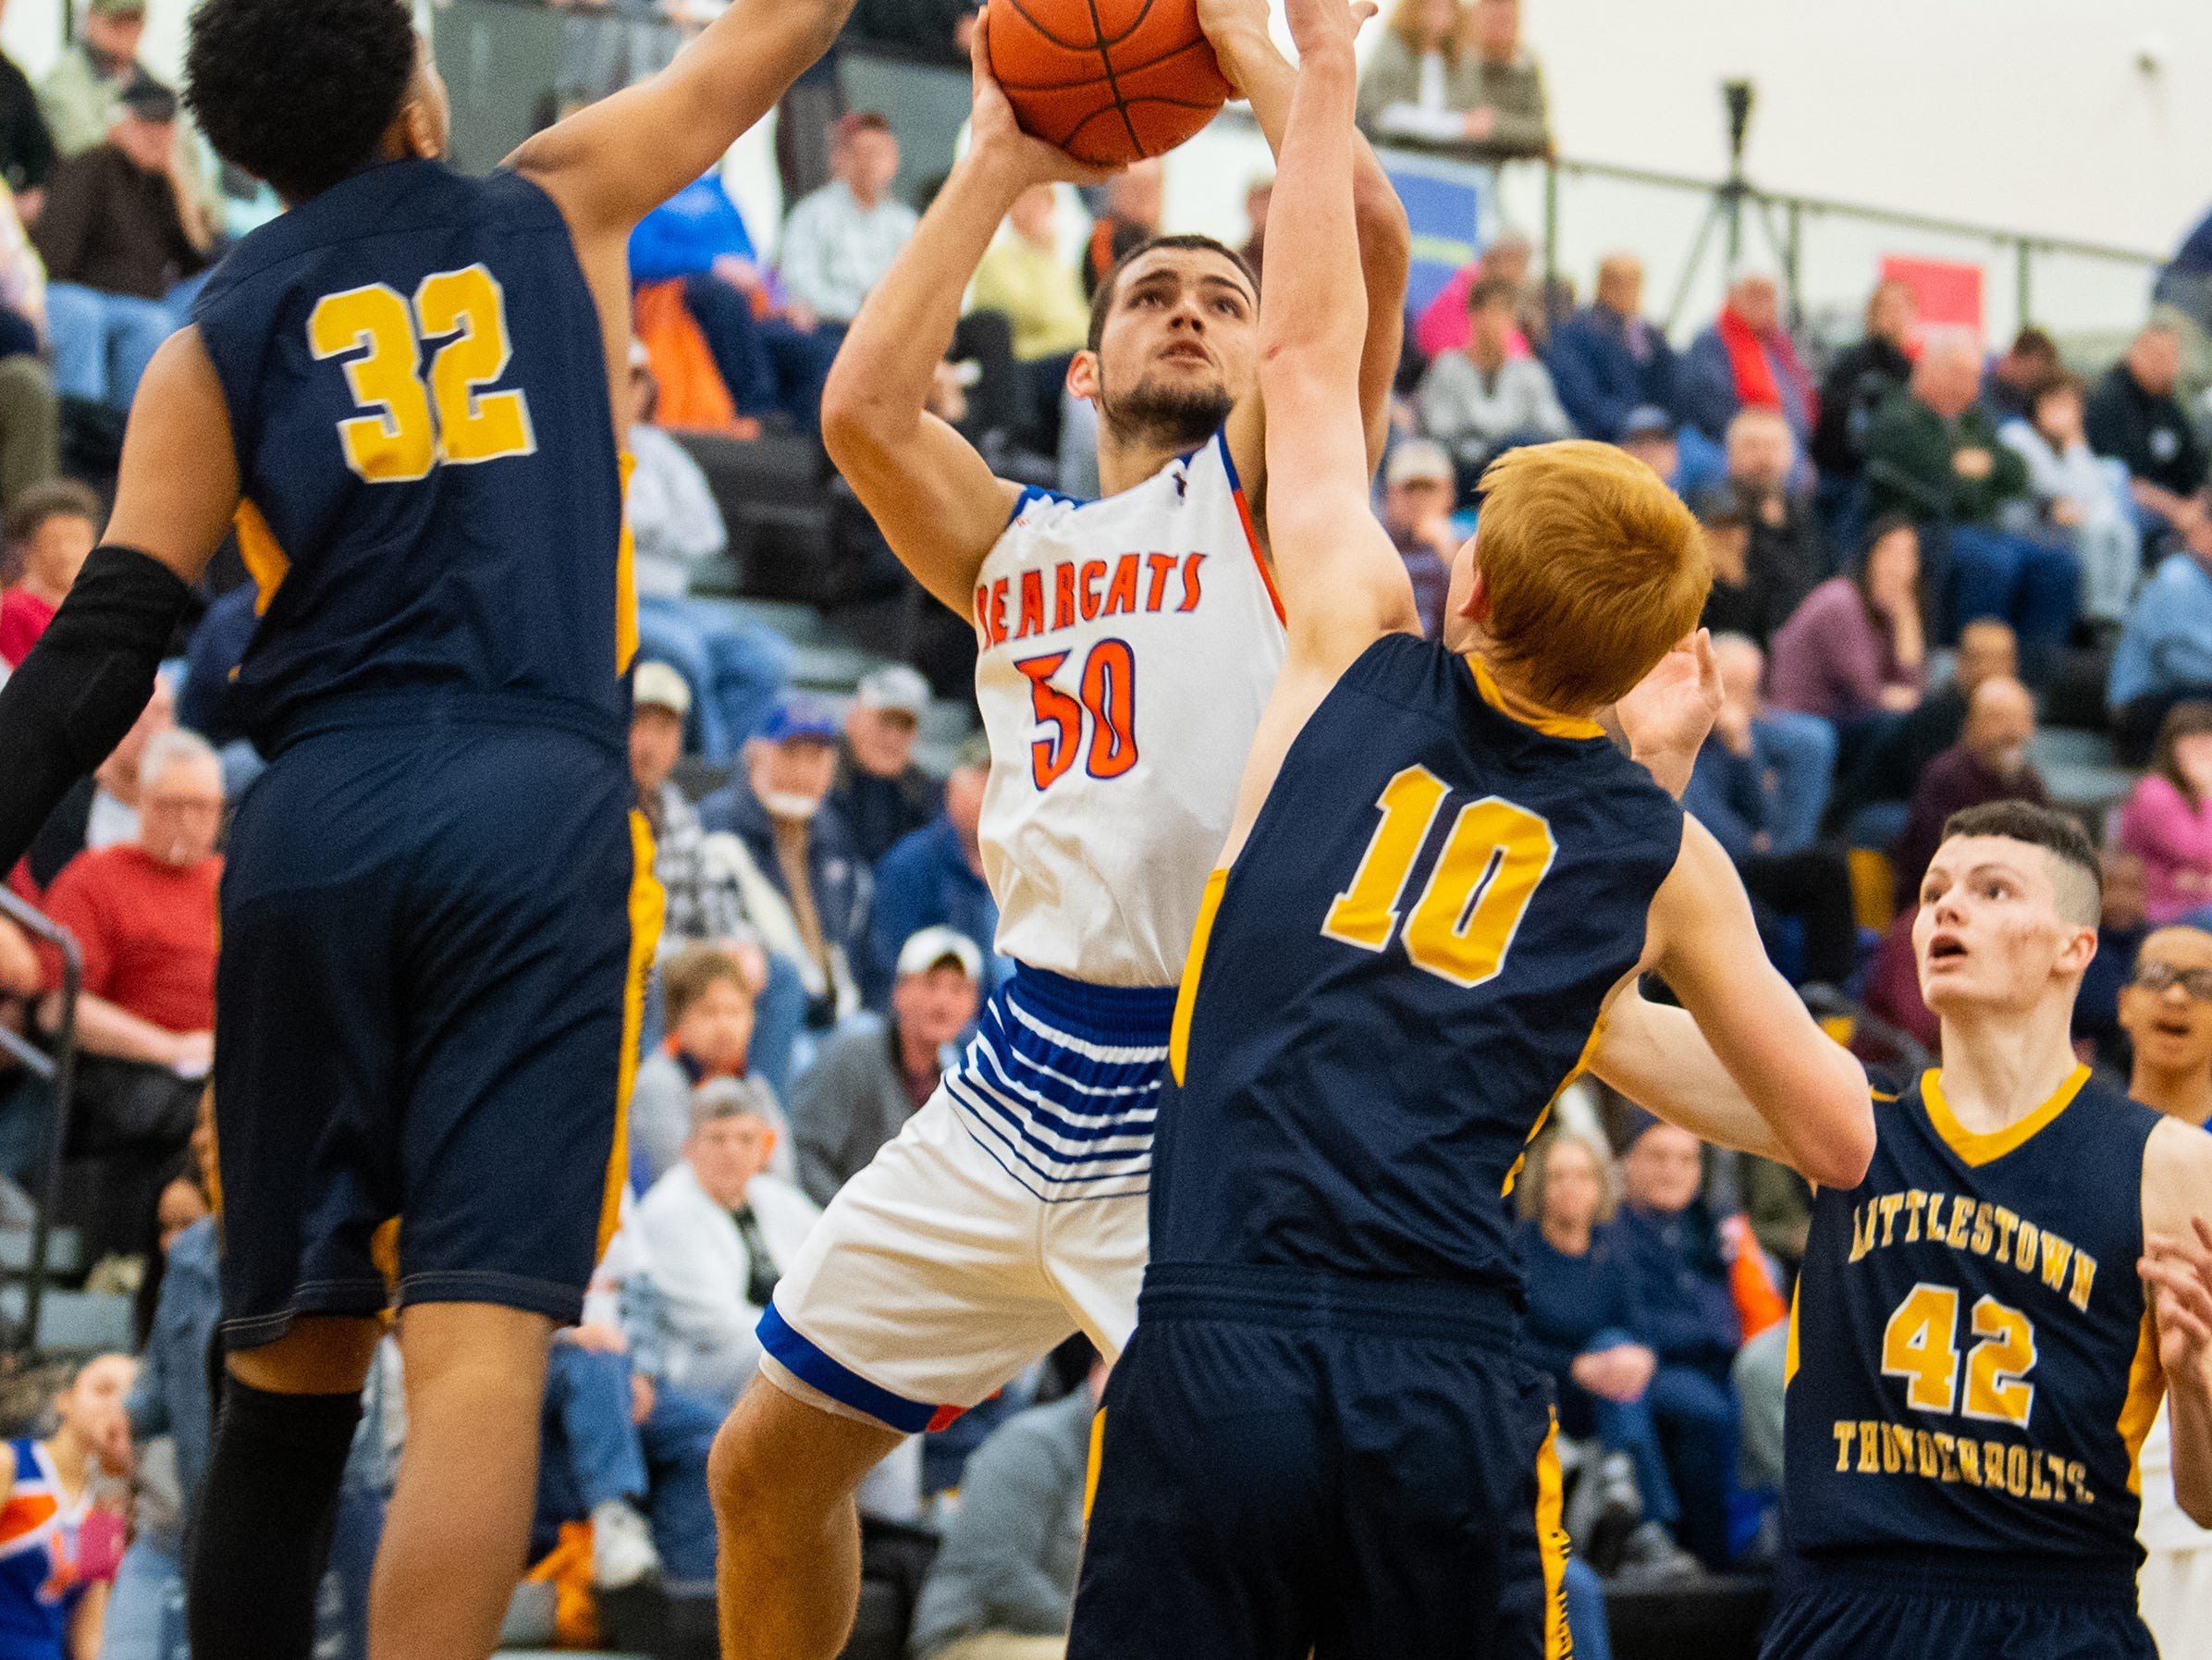 Seth Bernstein (50) looks to get a shot off during the YAIAA boys' basketball semifinals between York High and Littlestown, Wednesday, February 13, 2019 at Red Lion Area High School. The Bearcats defeated the Thunderbolts 74 to 51.